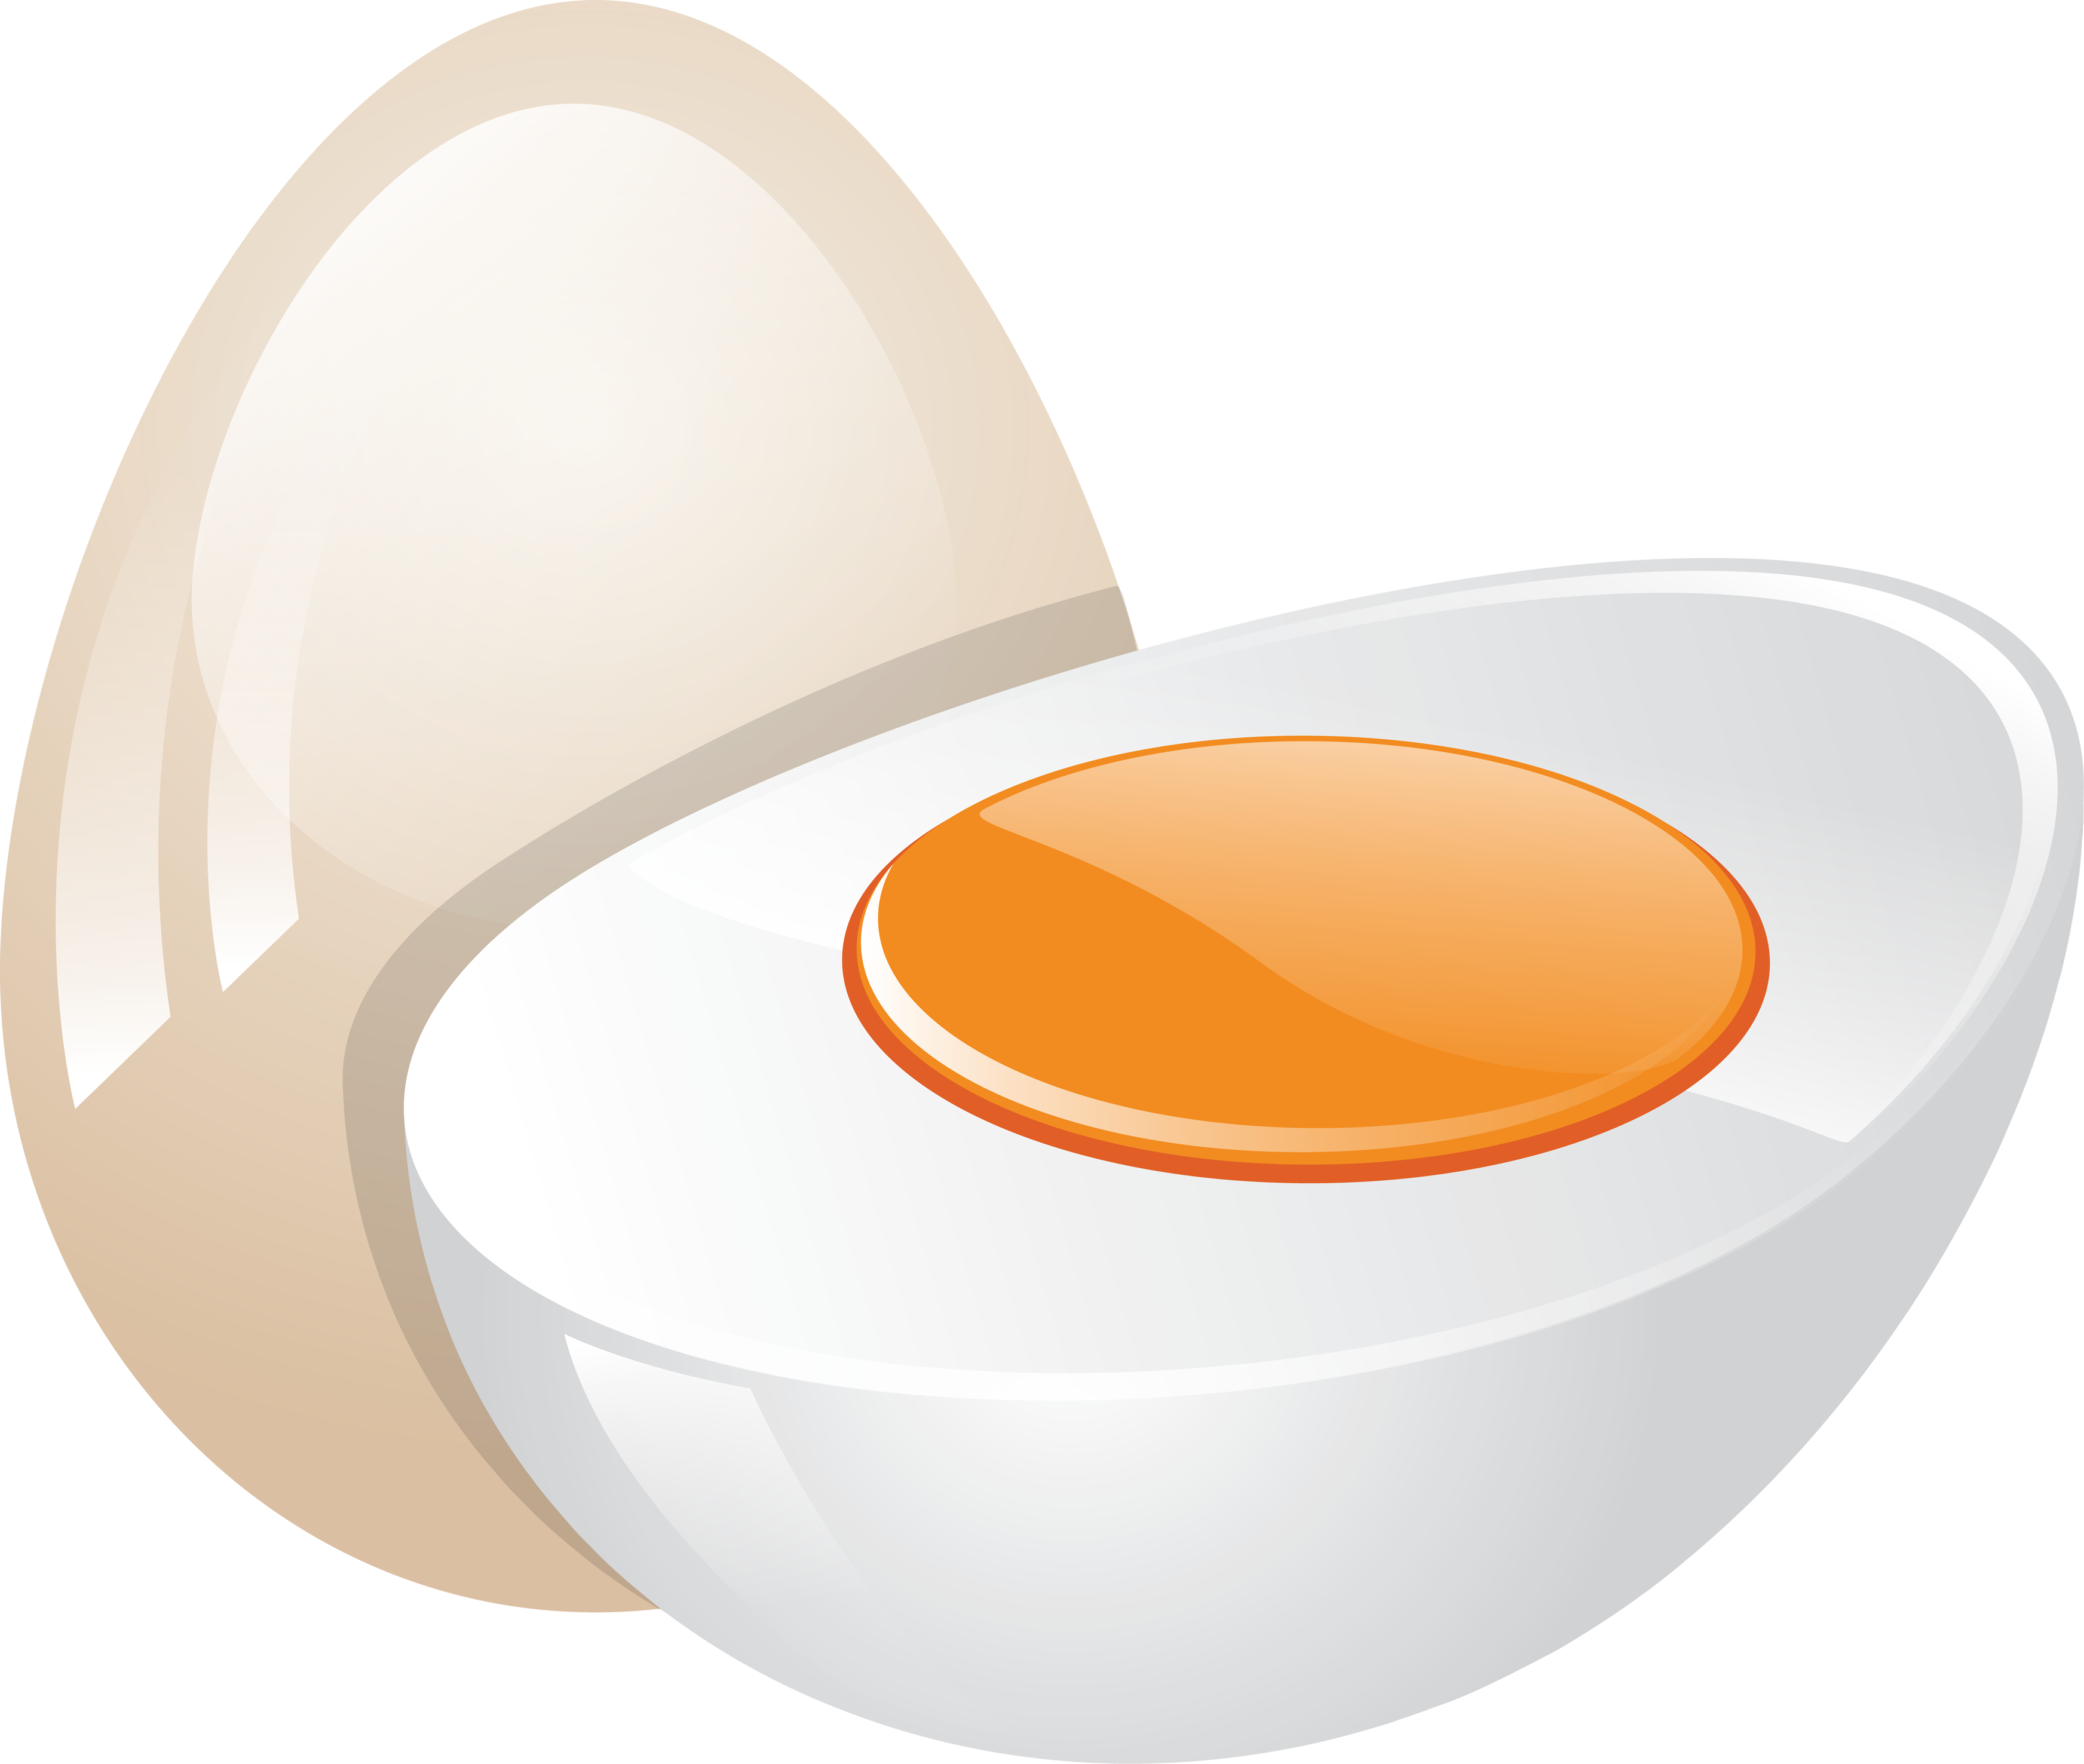 Egg PNG - 18576